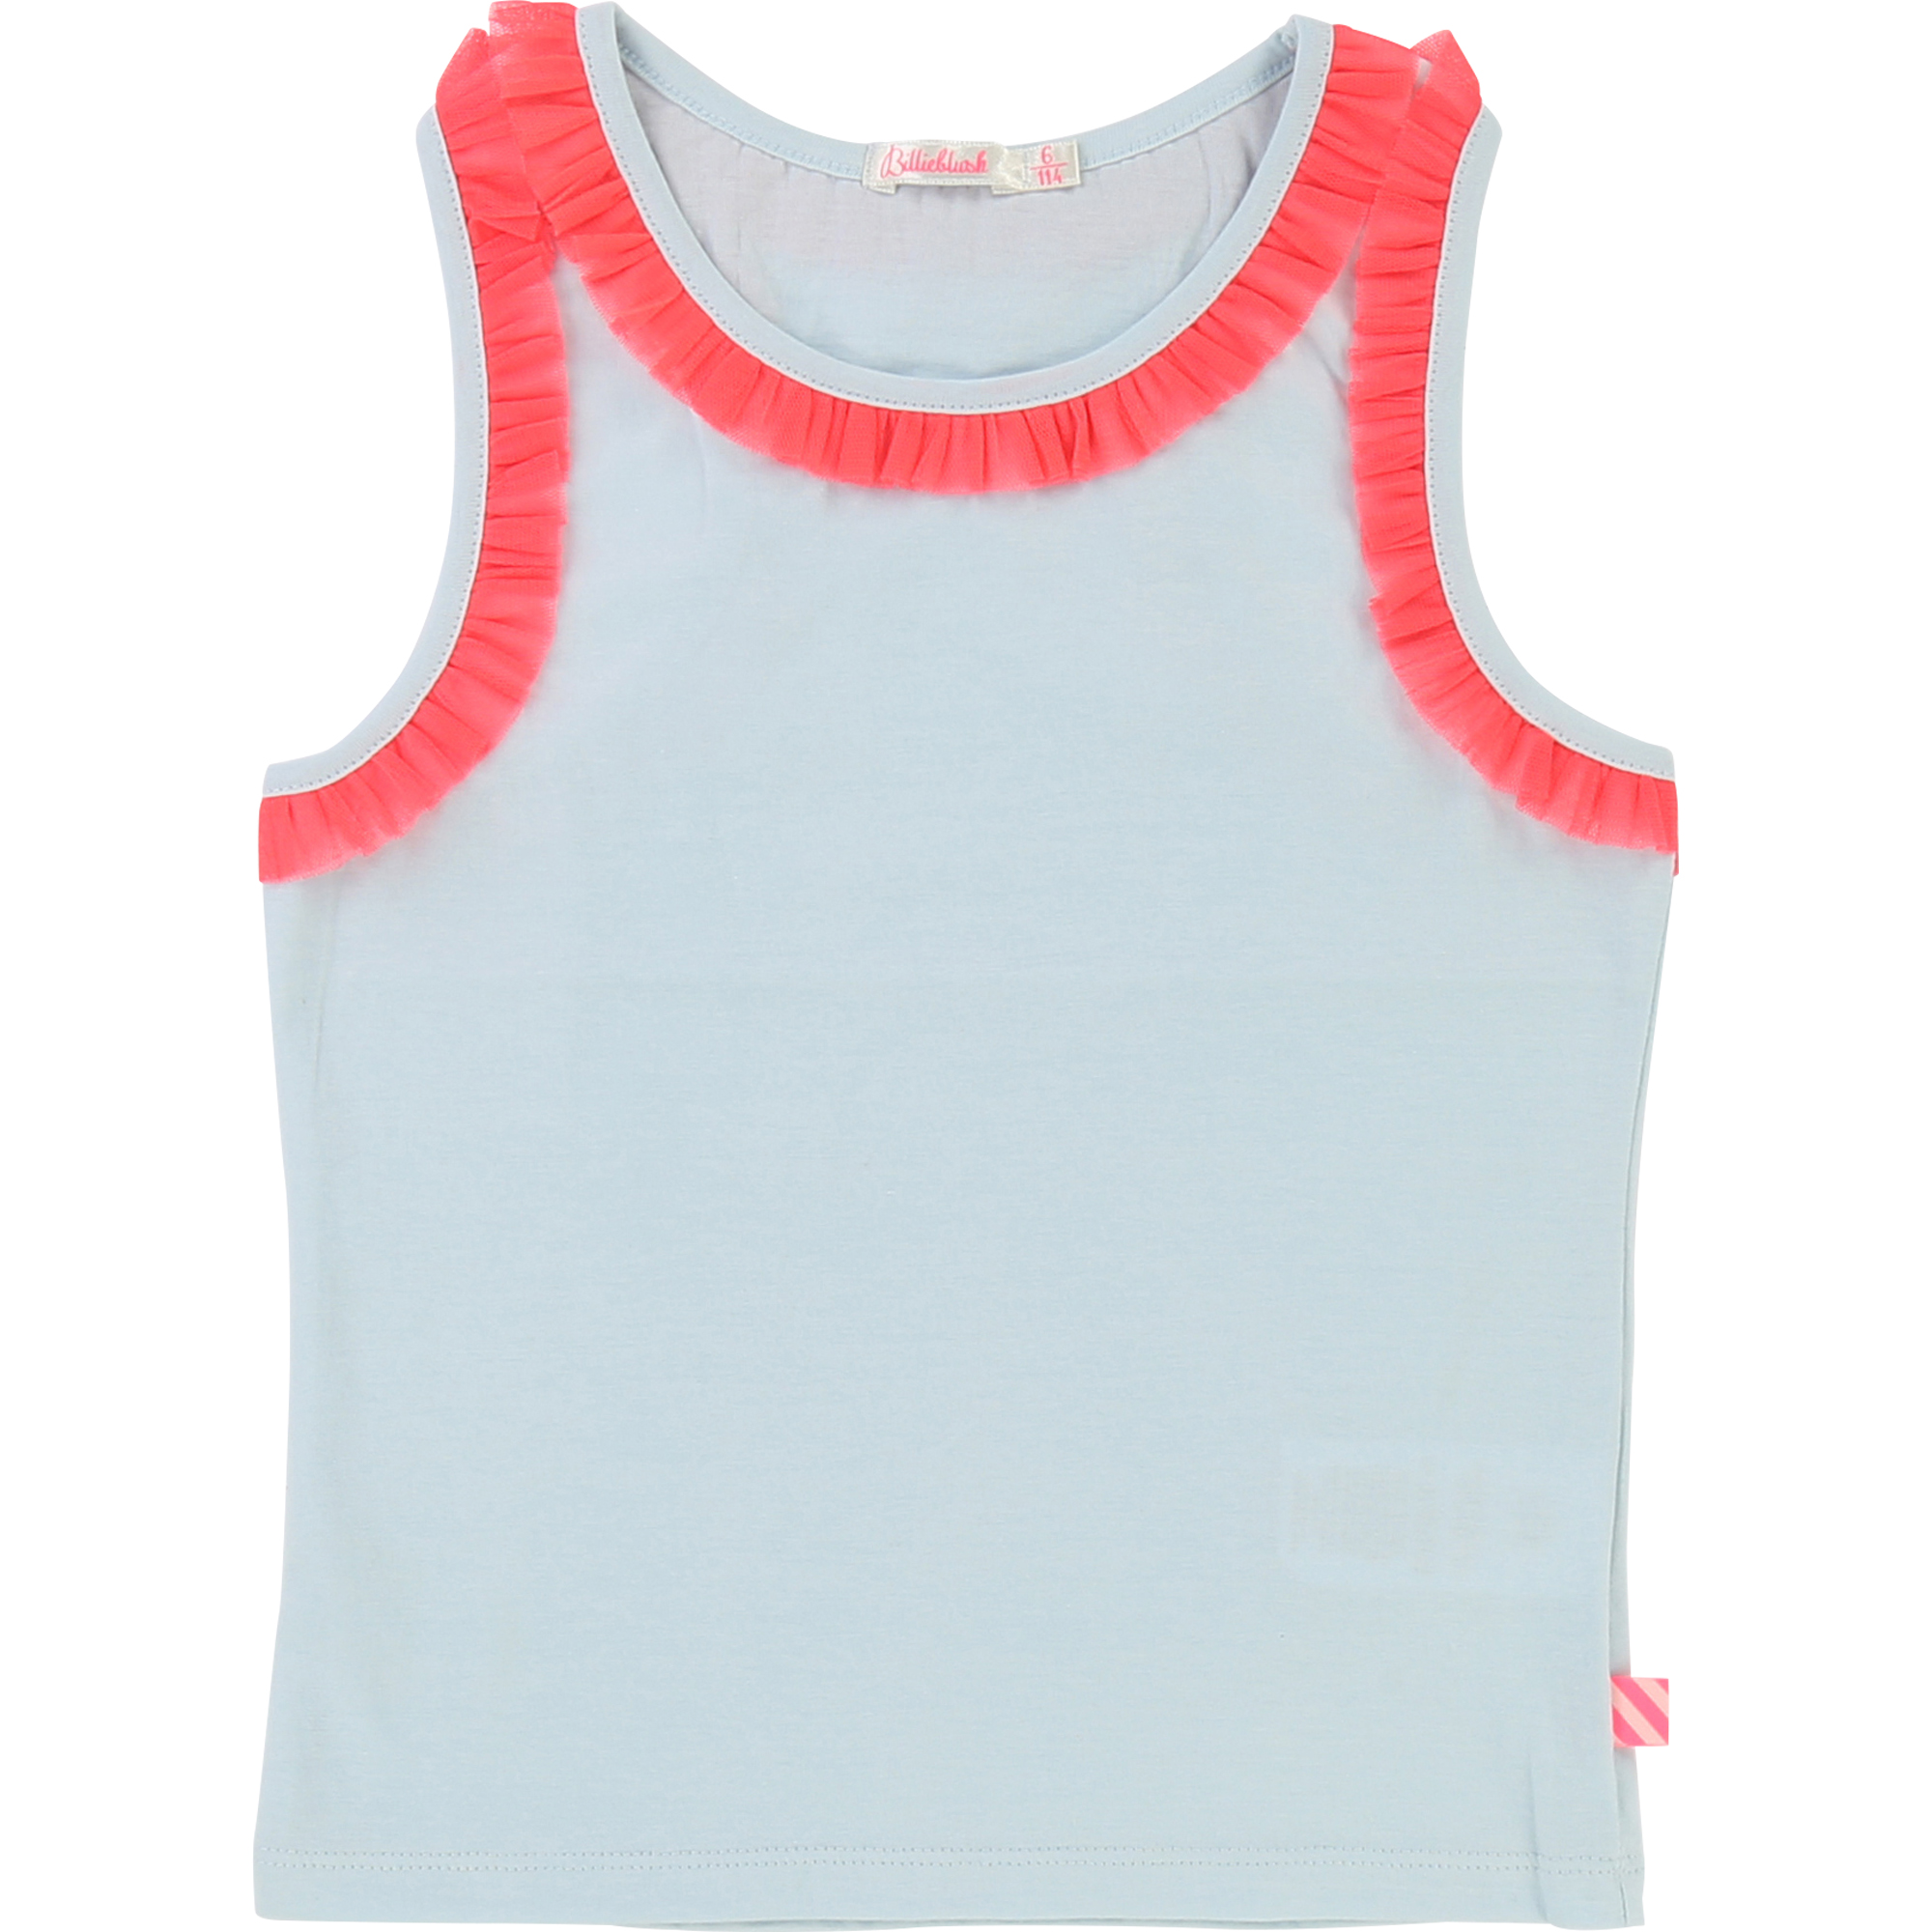 Billieblush  - SPRING PALE BLUE TANK TOP - Clothing